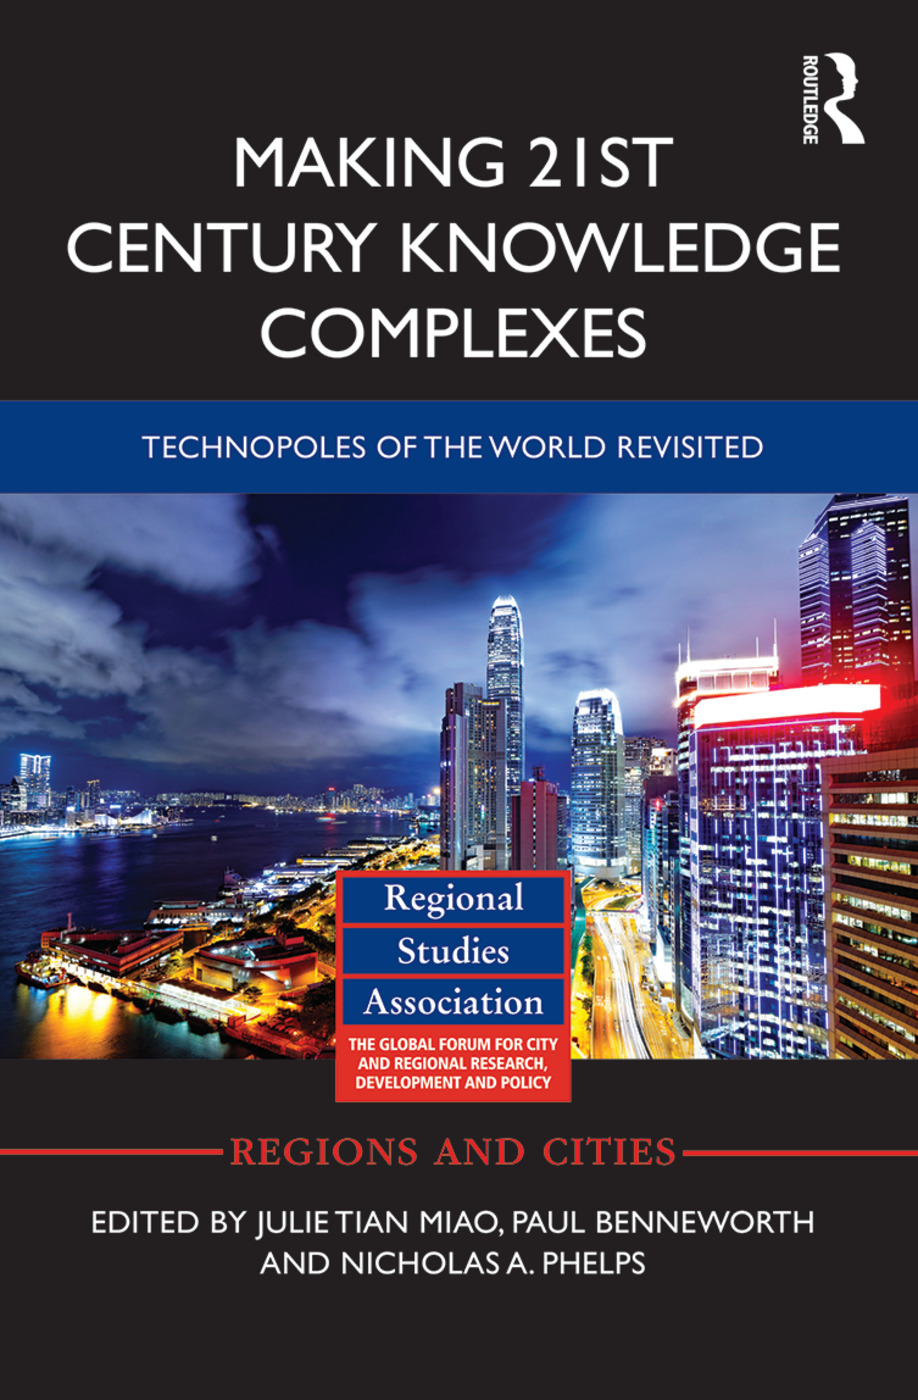 Making 21st Century Knowledge Complexes: Technopoles of the world revisited book cover